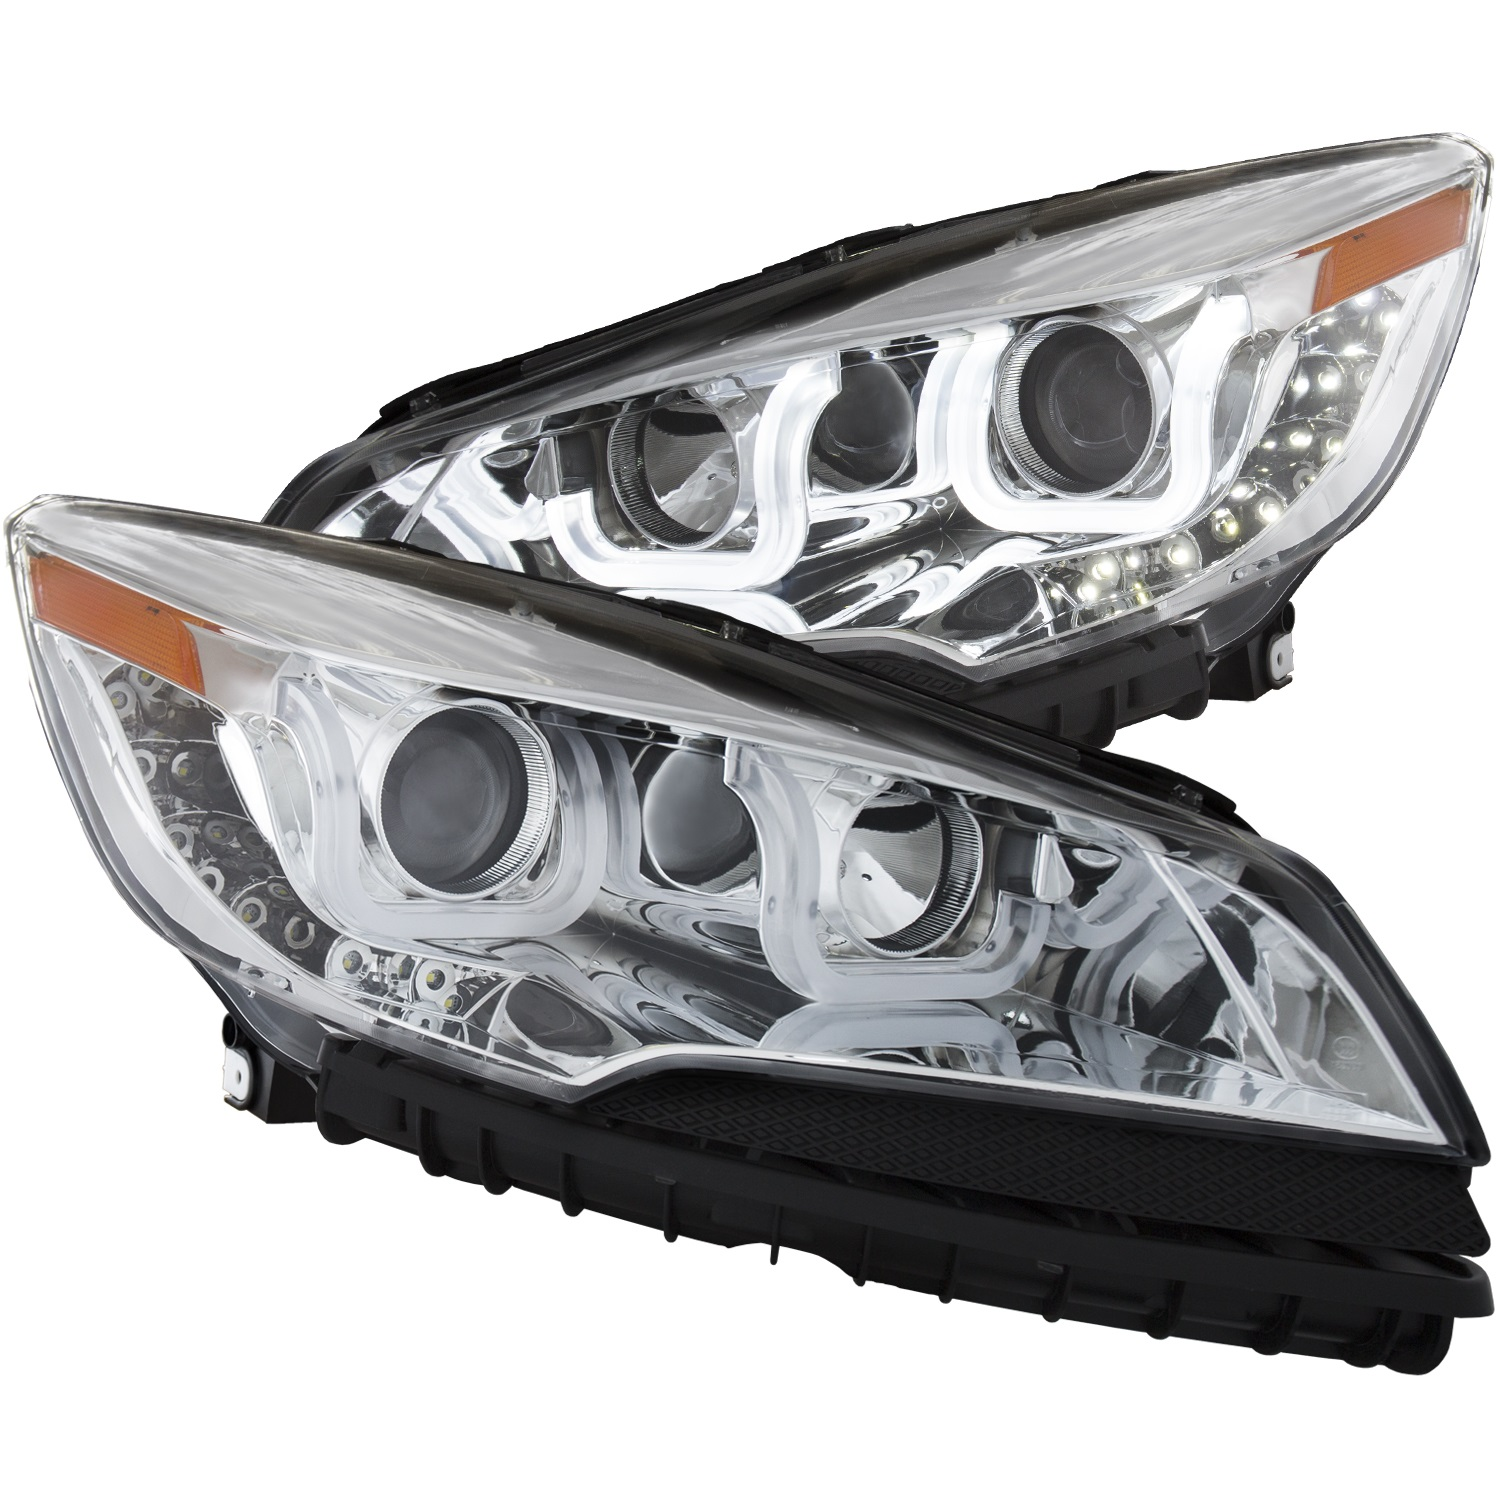 Anzo USA 111325 Projector Headlight Set Fits 13-16 Escape